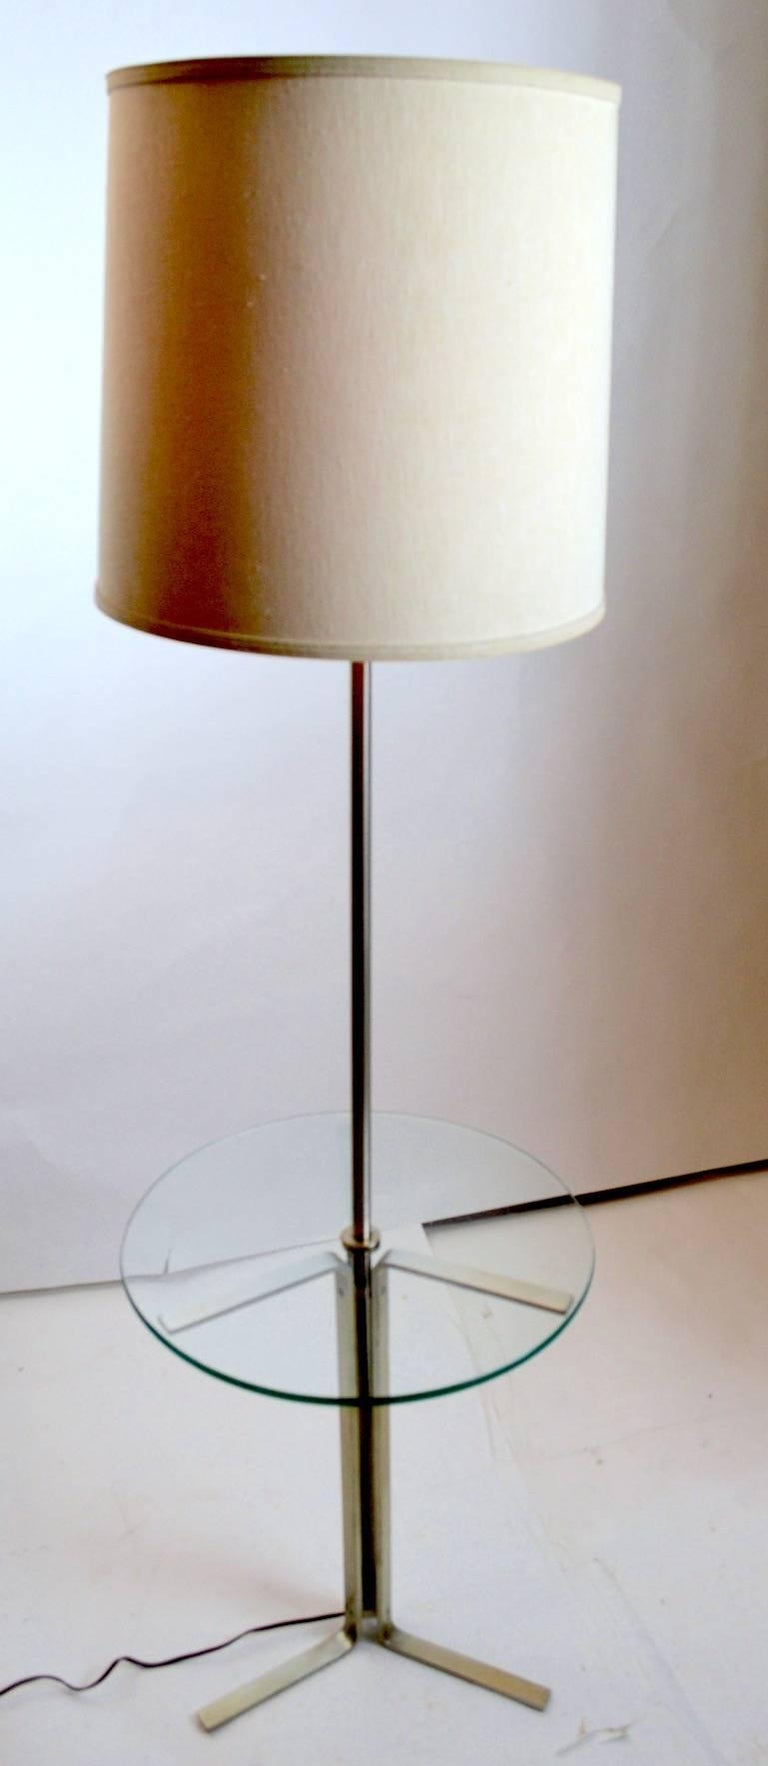 Modernist design and construction combination floor, table lamp. This example has an aluminium frame with a circular plate glass disk table surface. Table surface height 22 inches. Clean, working condition, shade not included.